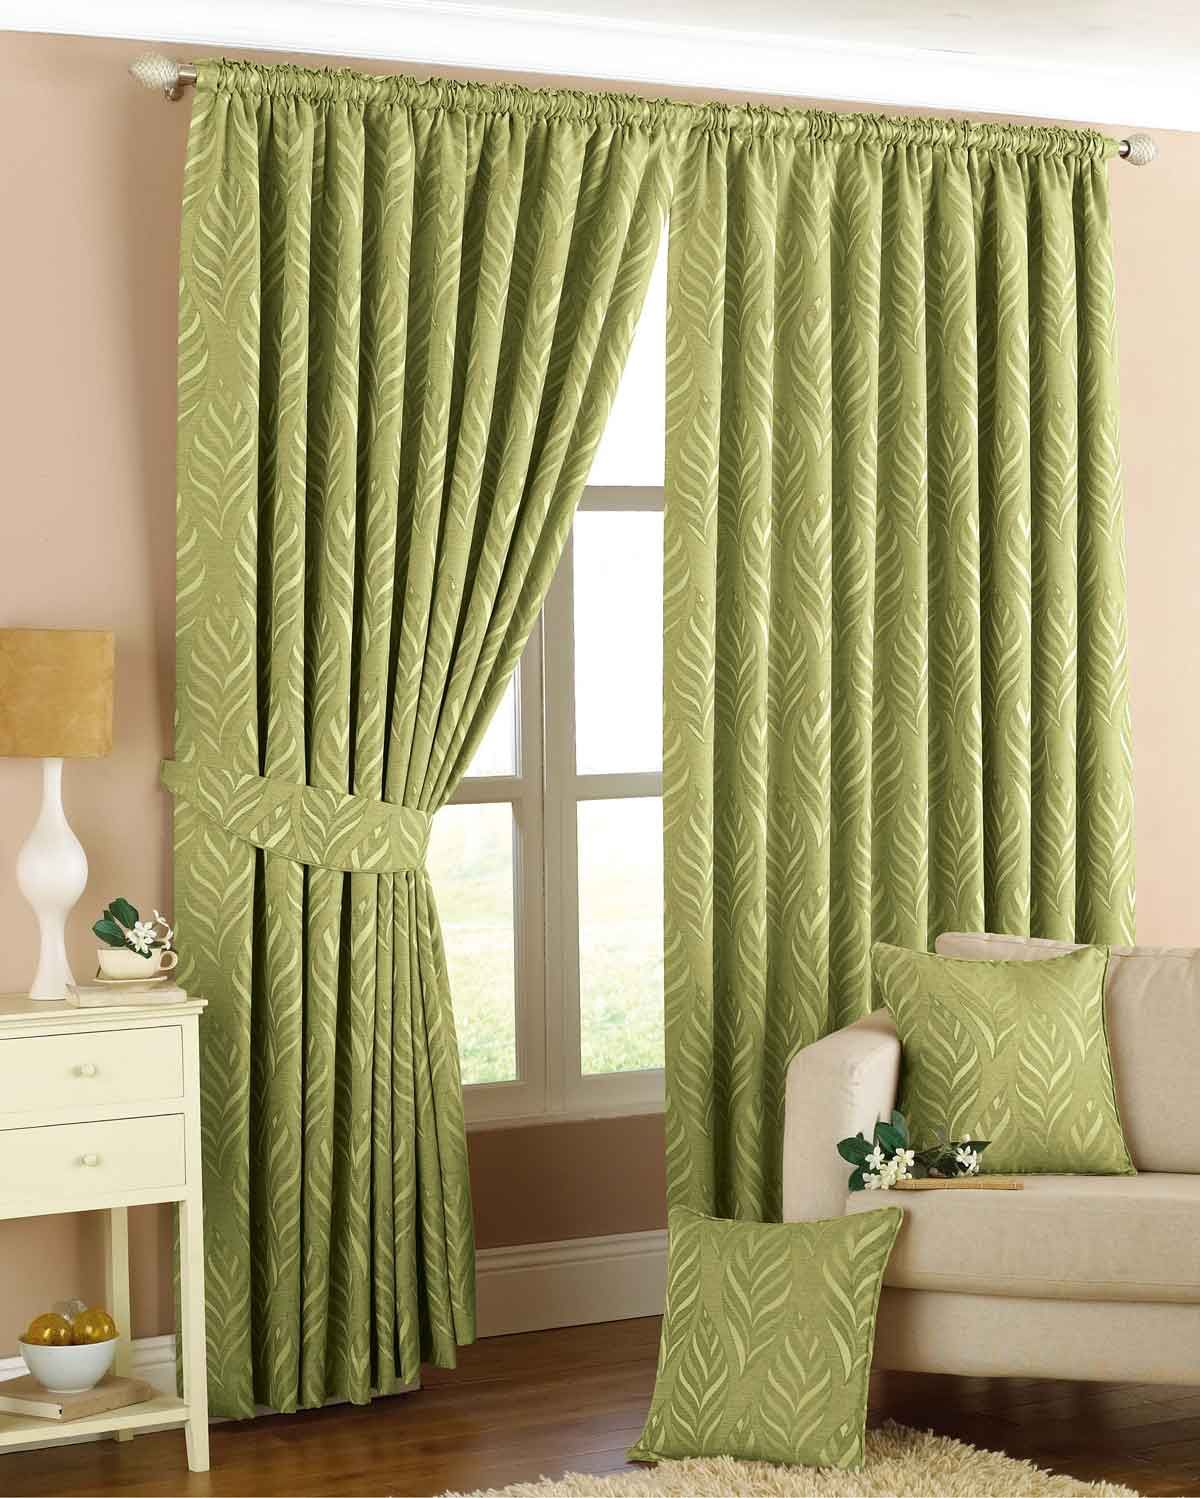 Green geometric curtains - Narrow Leaf Ready Made Lined Curtains